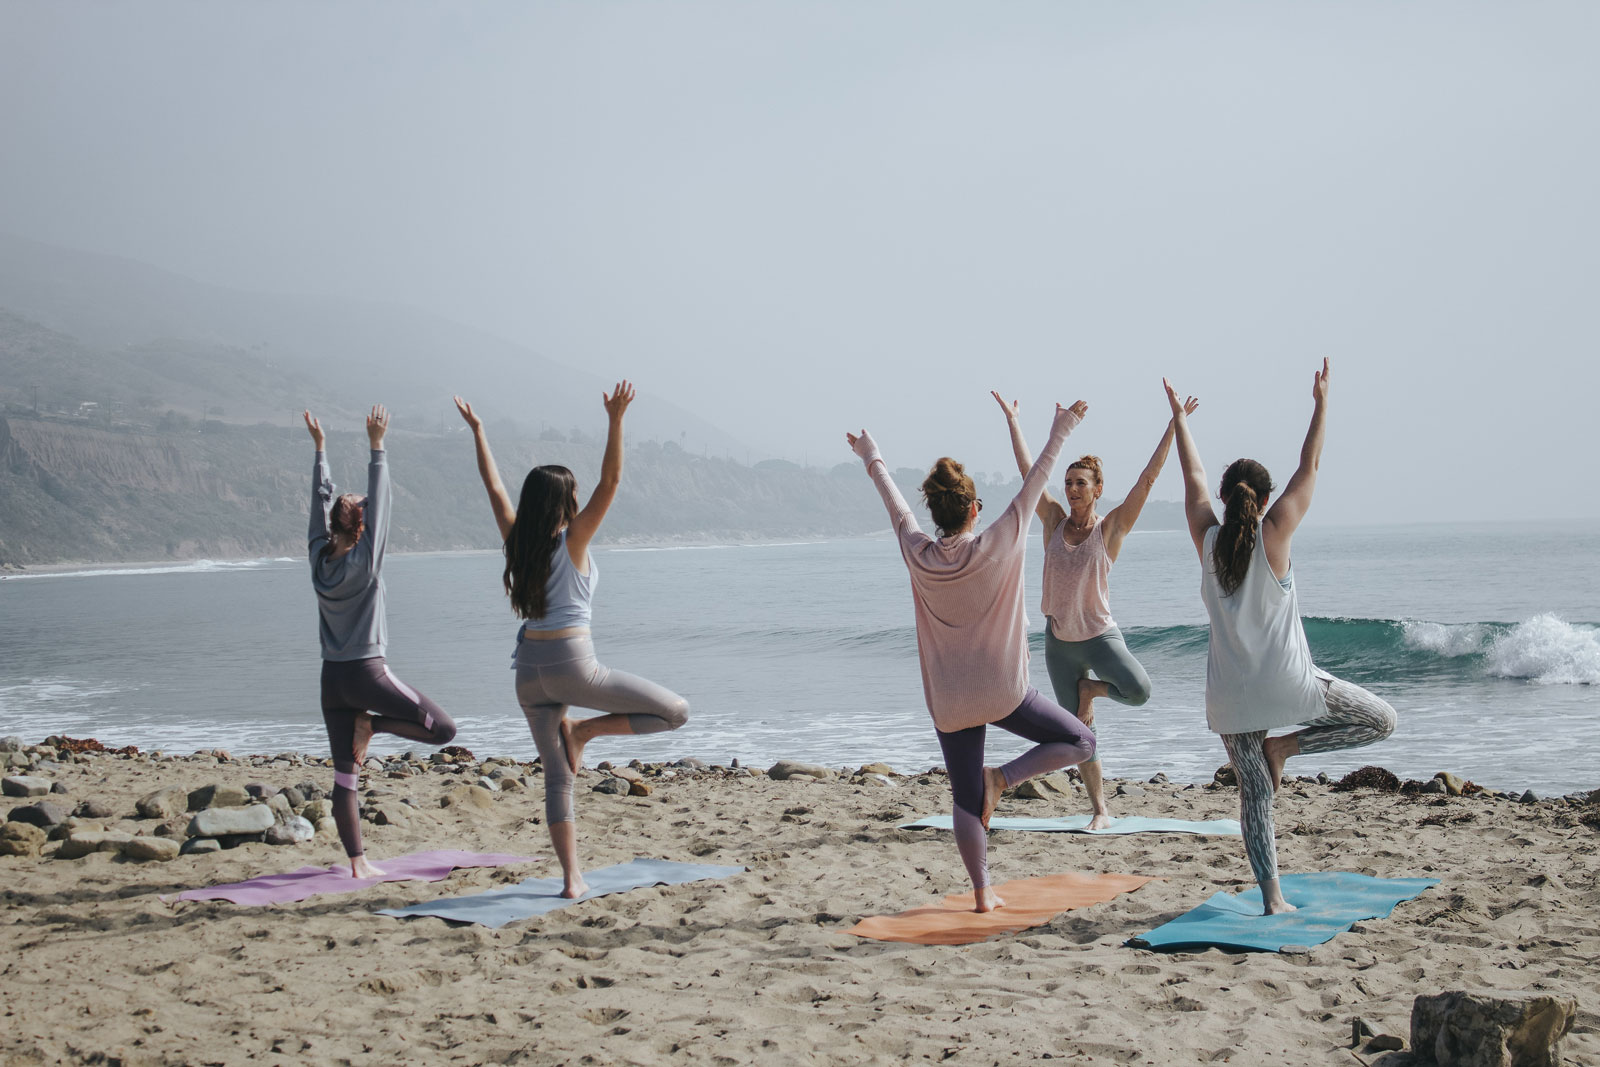 Women Doing Yoga at the Beach | The 3 Key Differences Between Vinyasa & Hatha Yoga